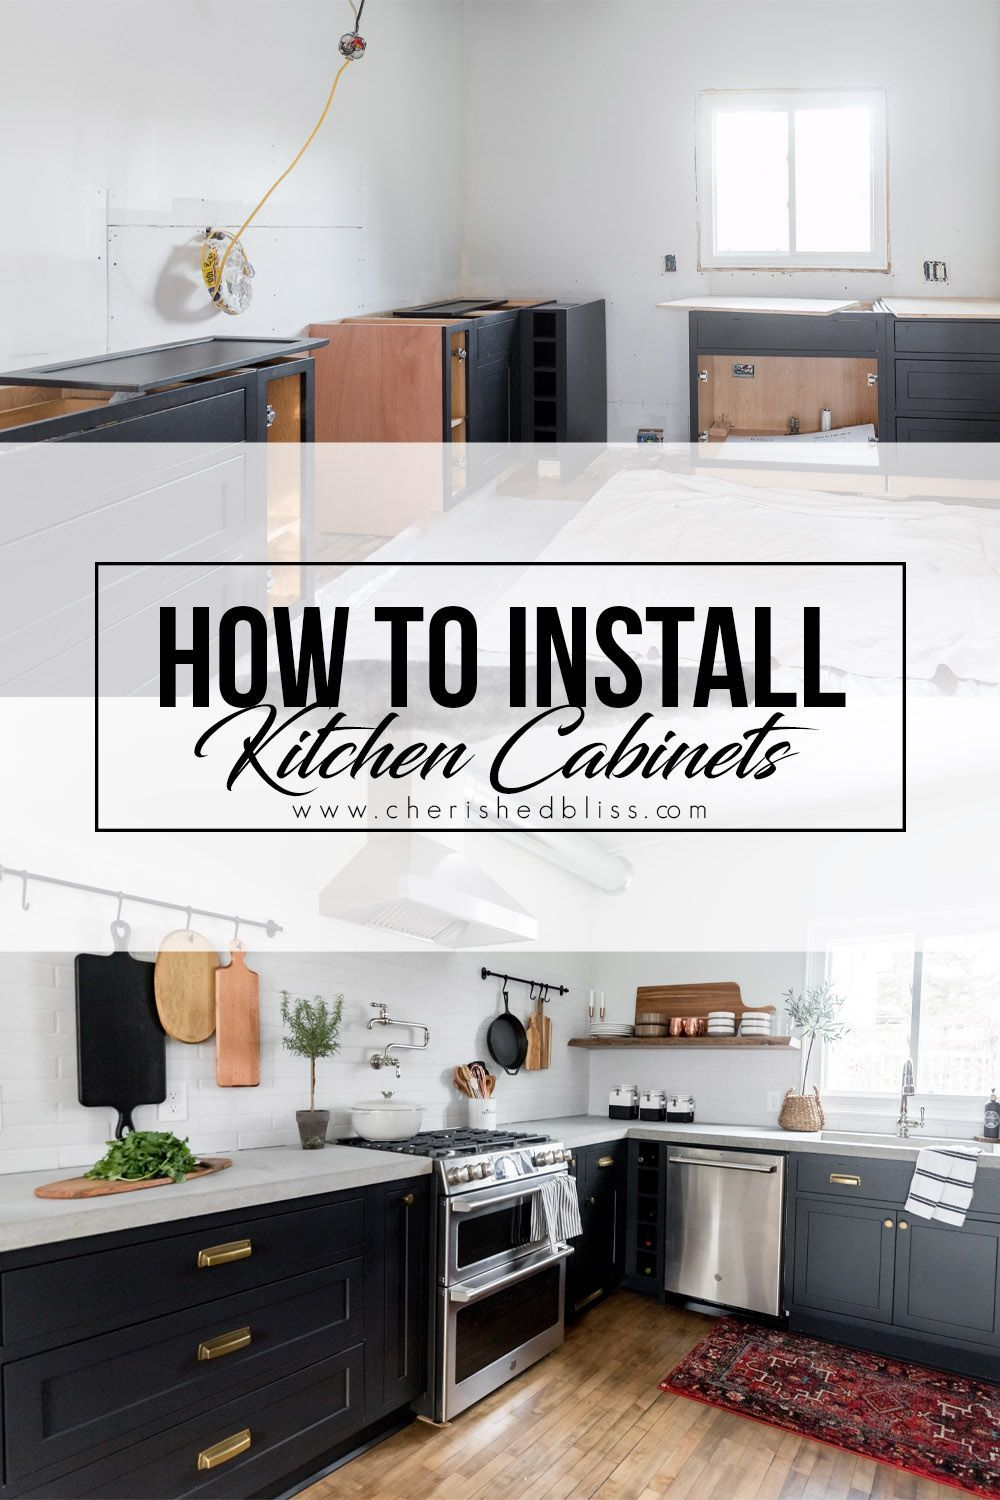 Installing Kitchen Cabinets Kitchen Cabinet Plans Installing Cabinets Diy Kitch In 2020 Installing Kitchen Cabinets Diy Kitchen Cabinets Kitchen Cabinet Plans